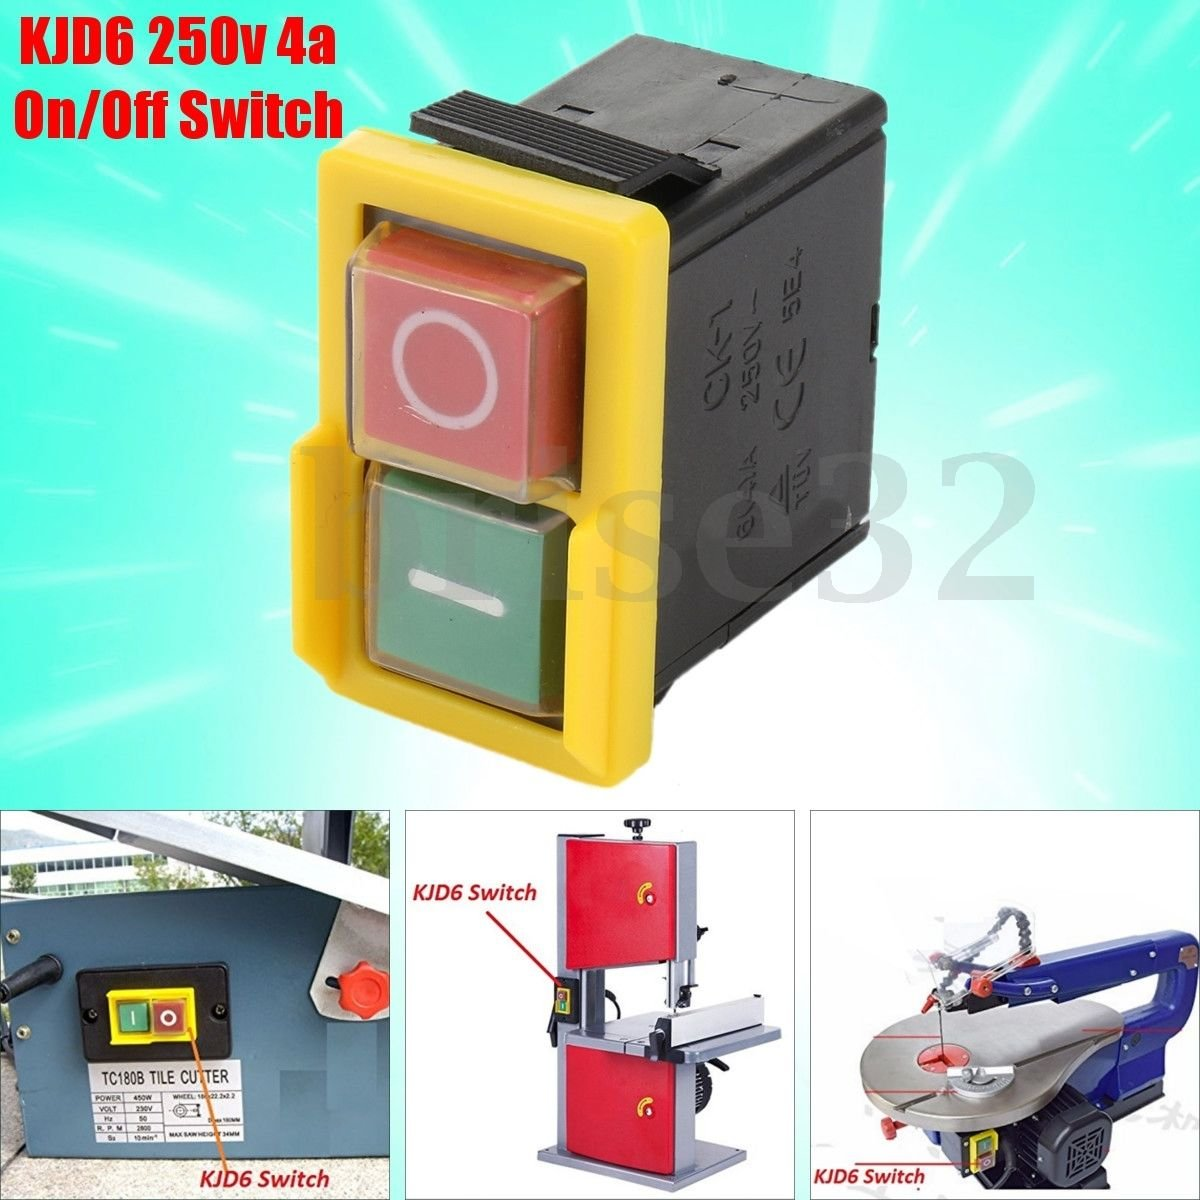 250V 4A IP54 5E4 Universal Replacement KJD6 On//Off Switch Part For Woodworking